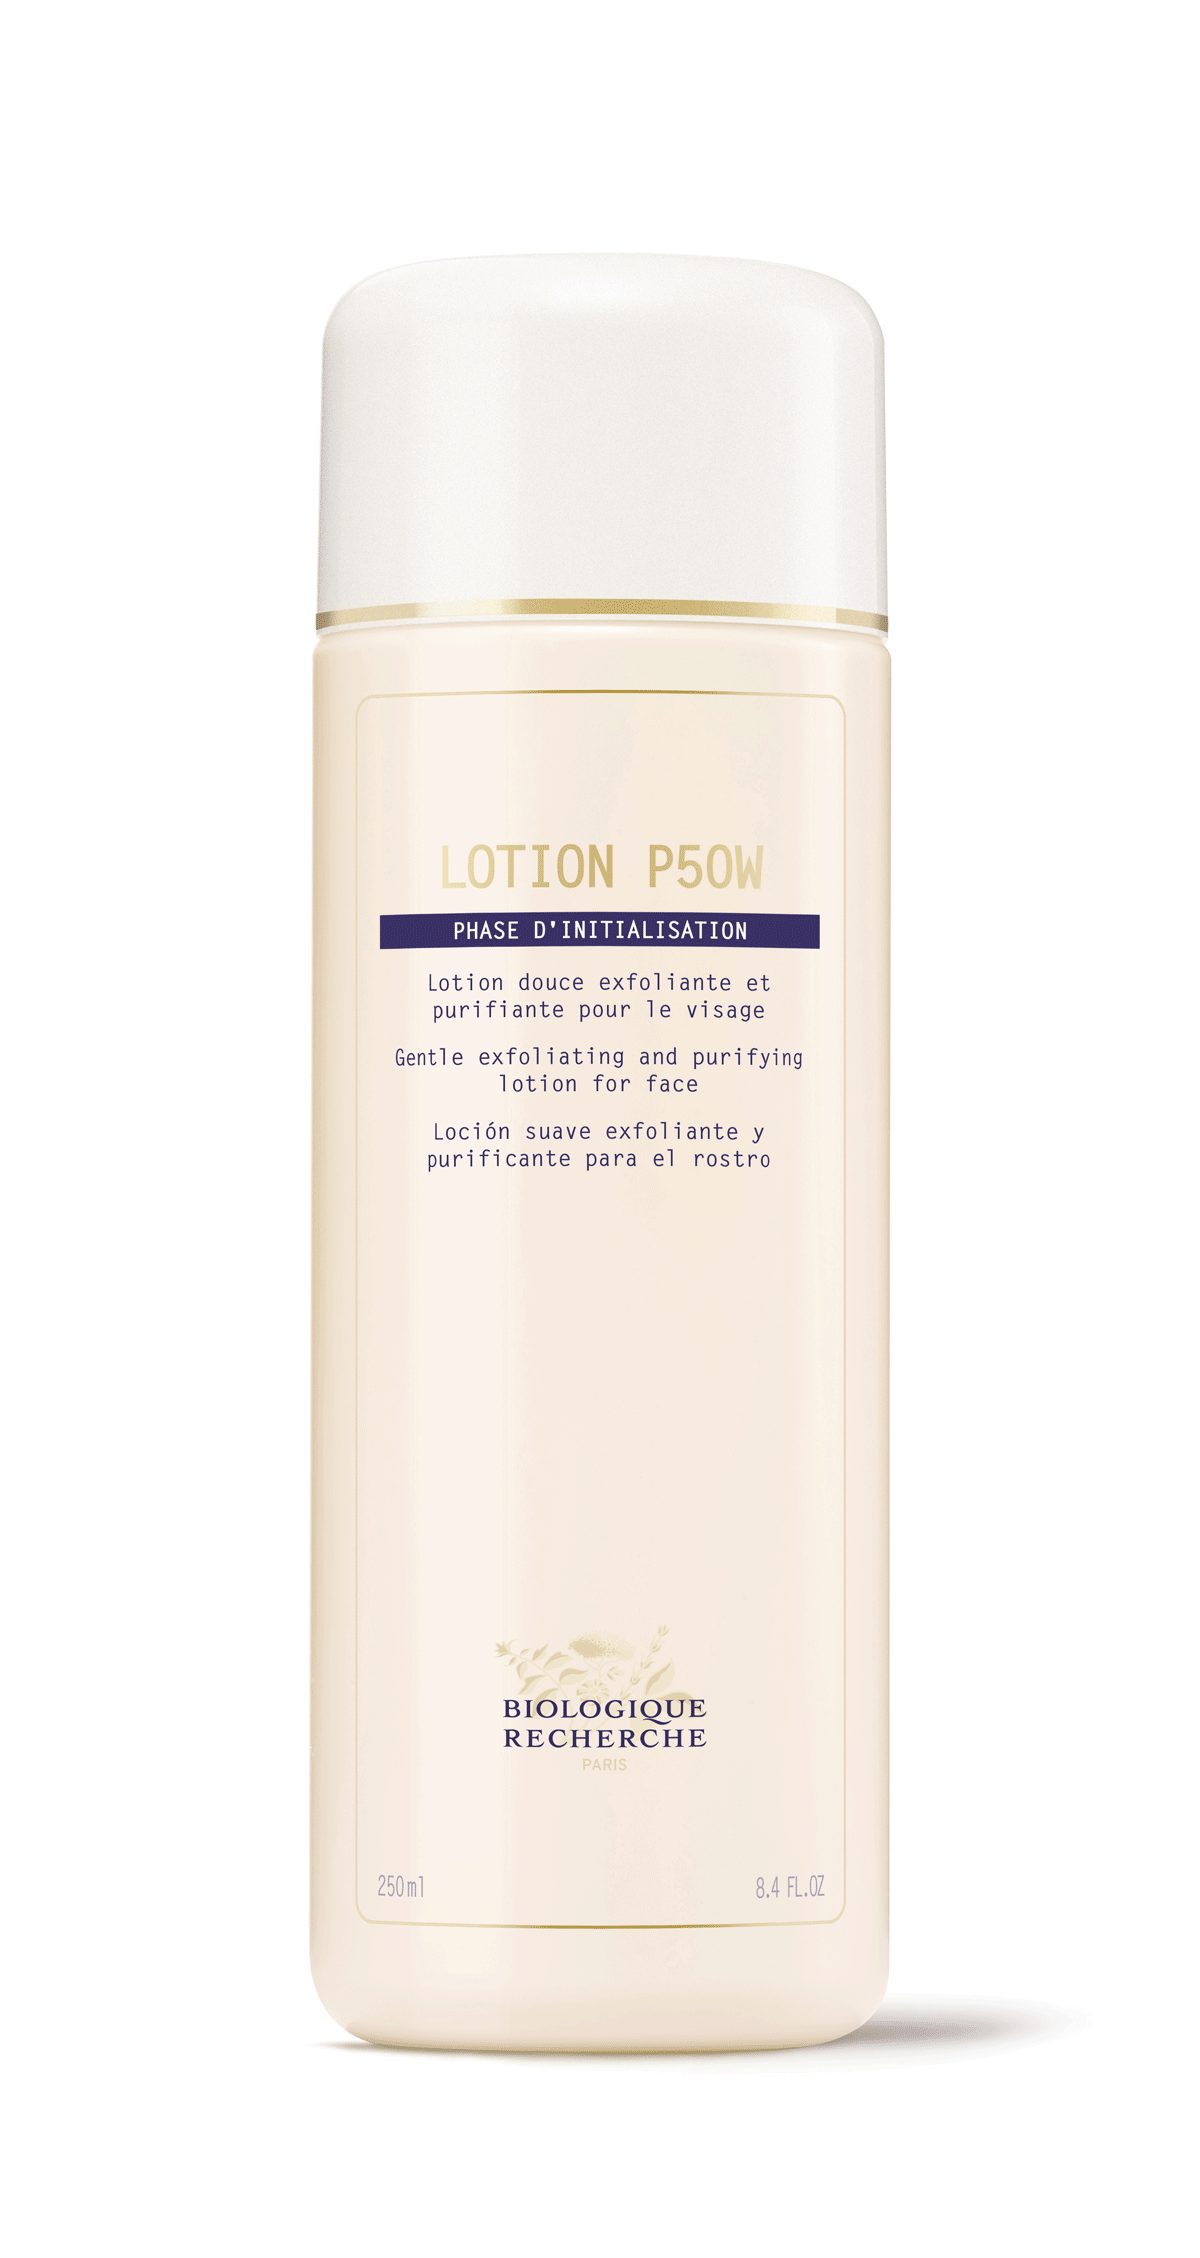 Biologique Recherche Lotion P50W. Worldwide Free Shipping - Singapore, Malaysia, Brunei, Indonesia, India, Japan, Hong Kong, USA, UAE, UK, and Europe!